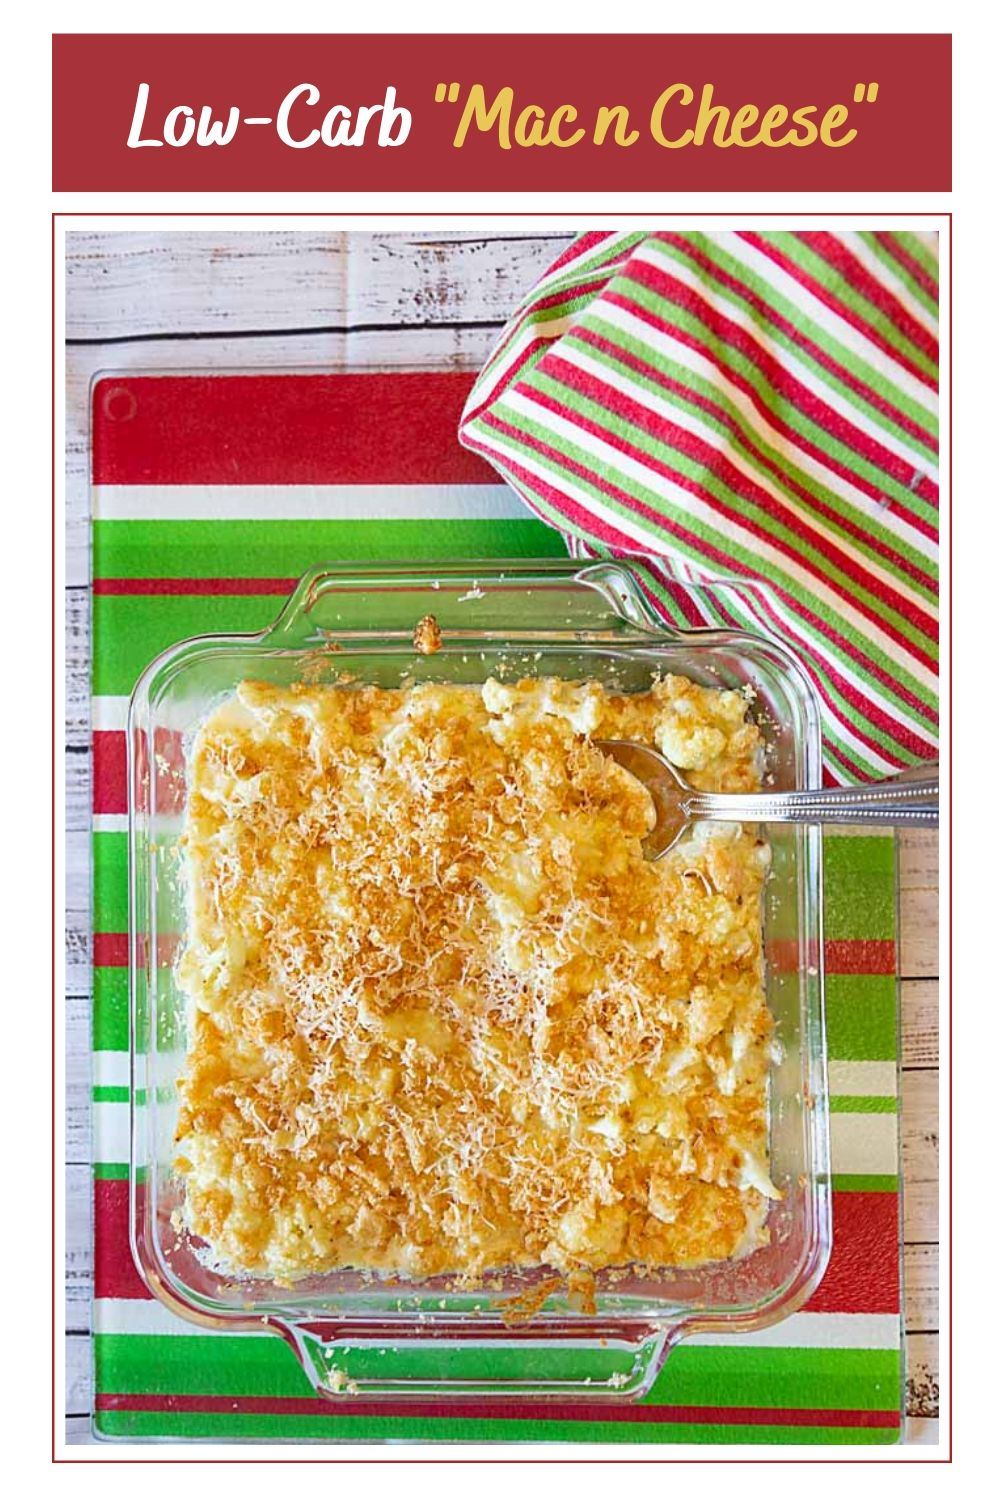 Rich and cheesy, Low-Carb Cauliflower Mac n Cheese, means it's easy to have delicious comfort food even if you are doing keto or gluten-free.